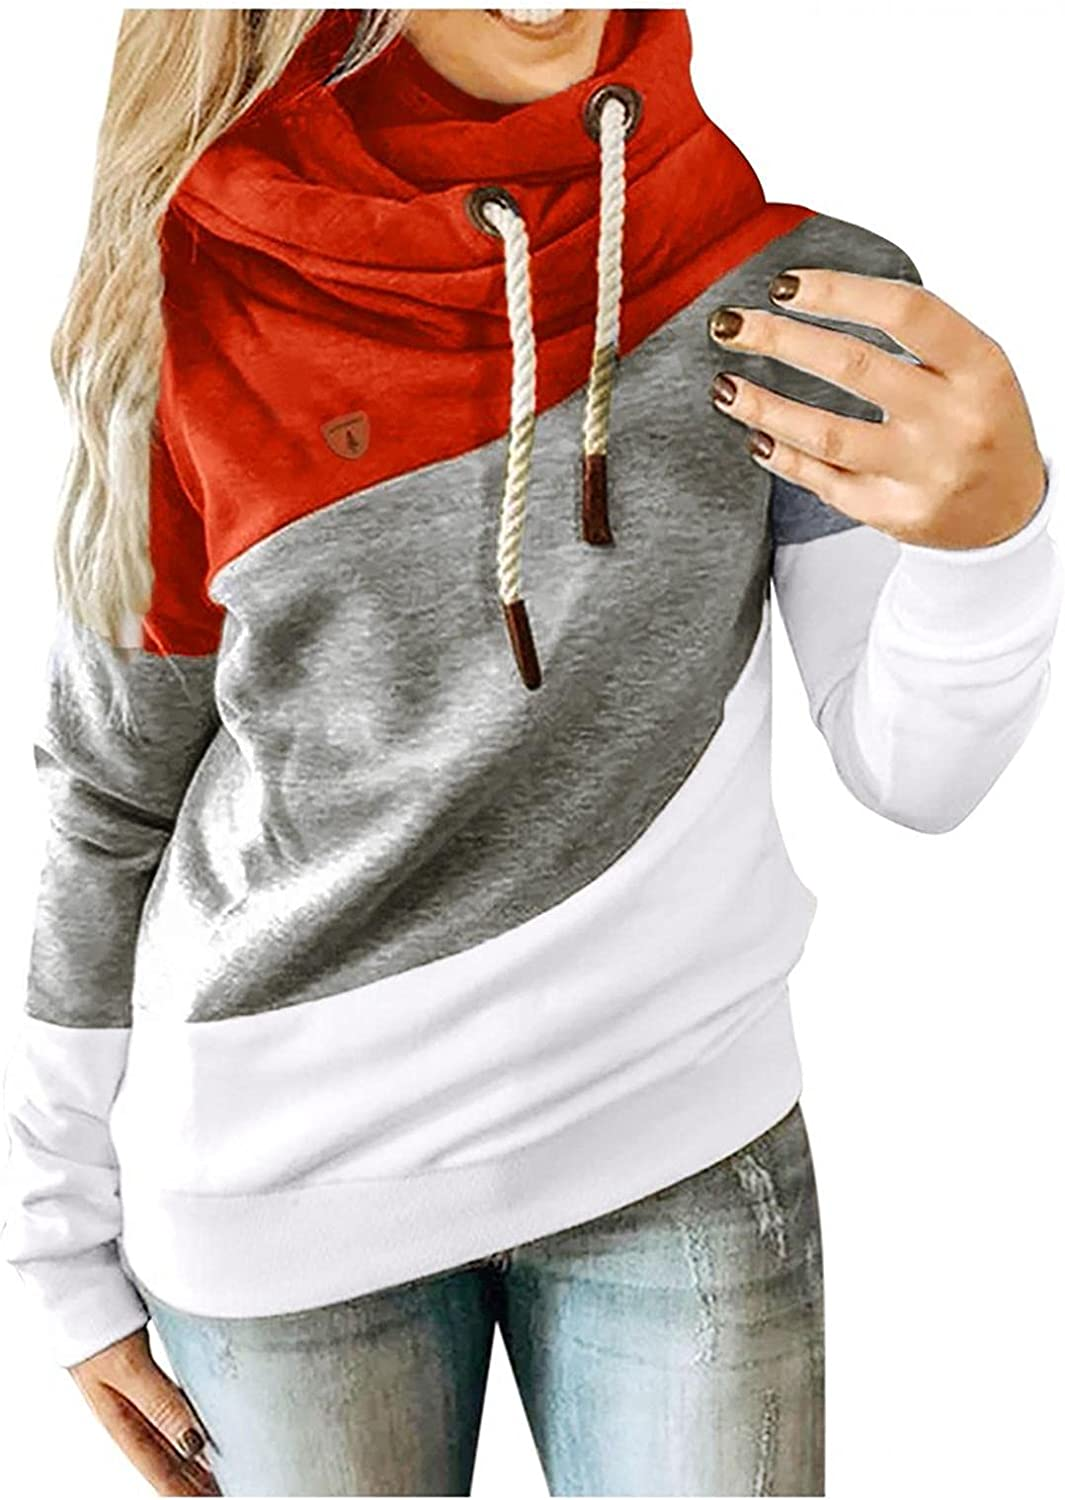 Hoodies for Women Trendy Casual Tops Long Sleeve Pullover Shirts Coats Hooded Drawstring Color Block Loose Sweatshirts